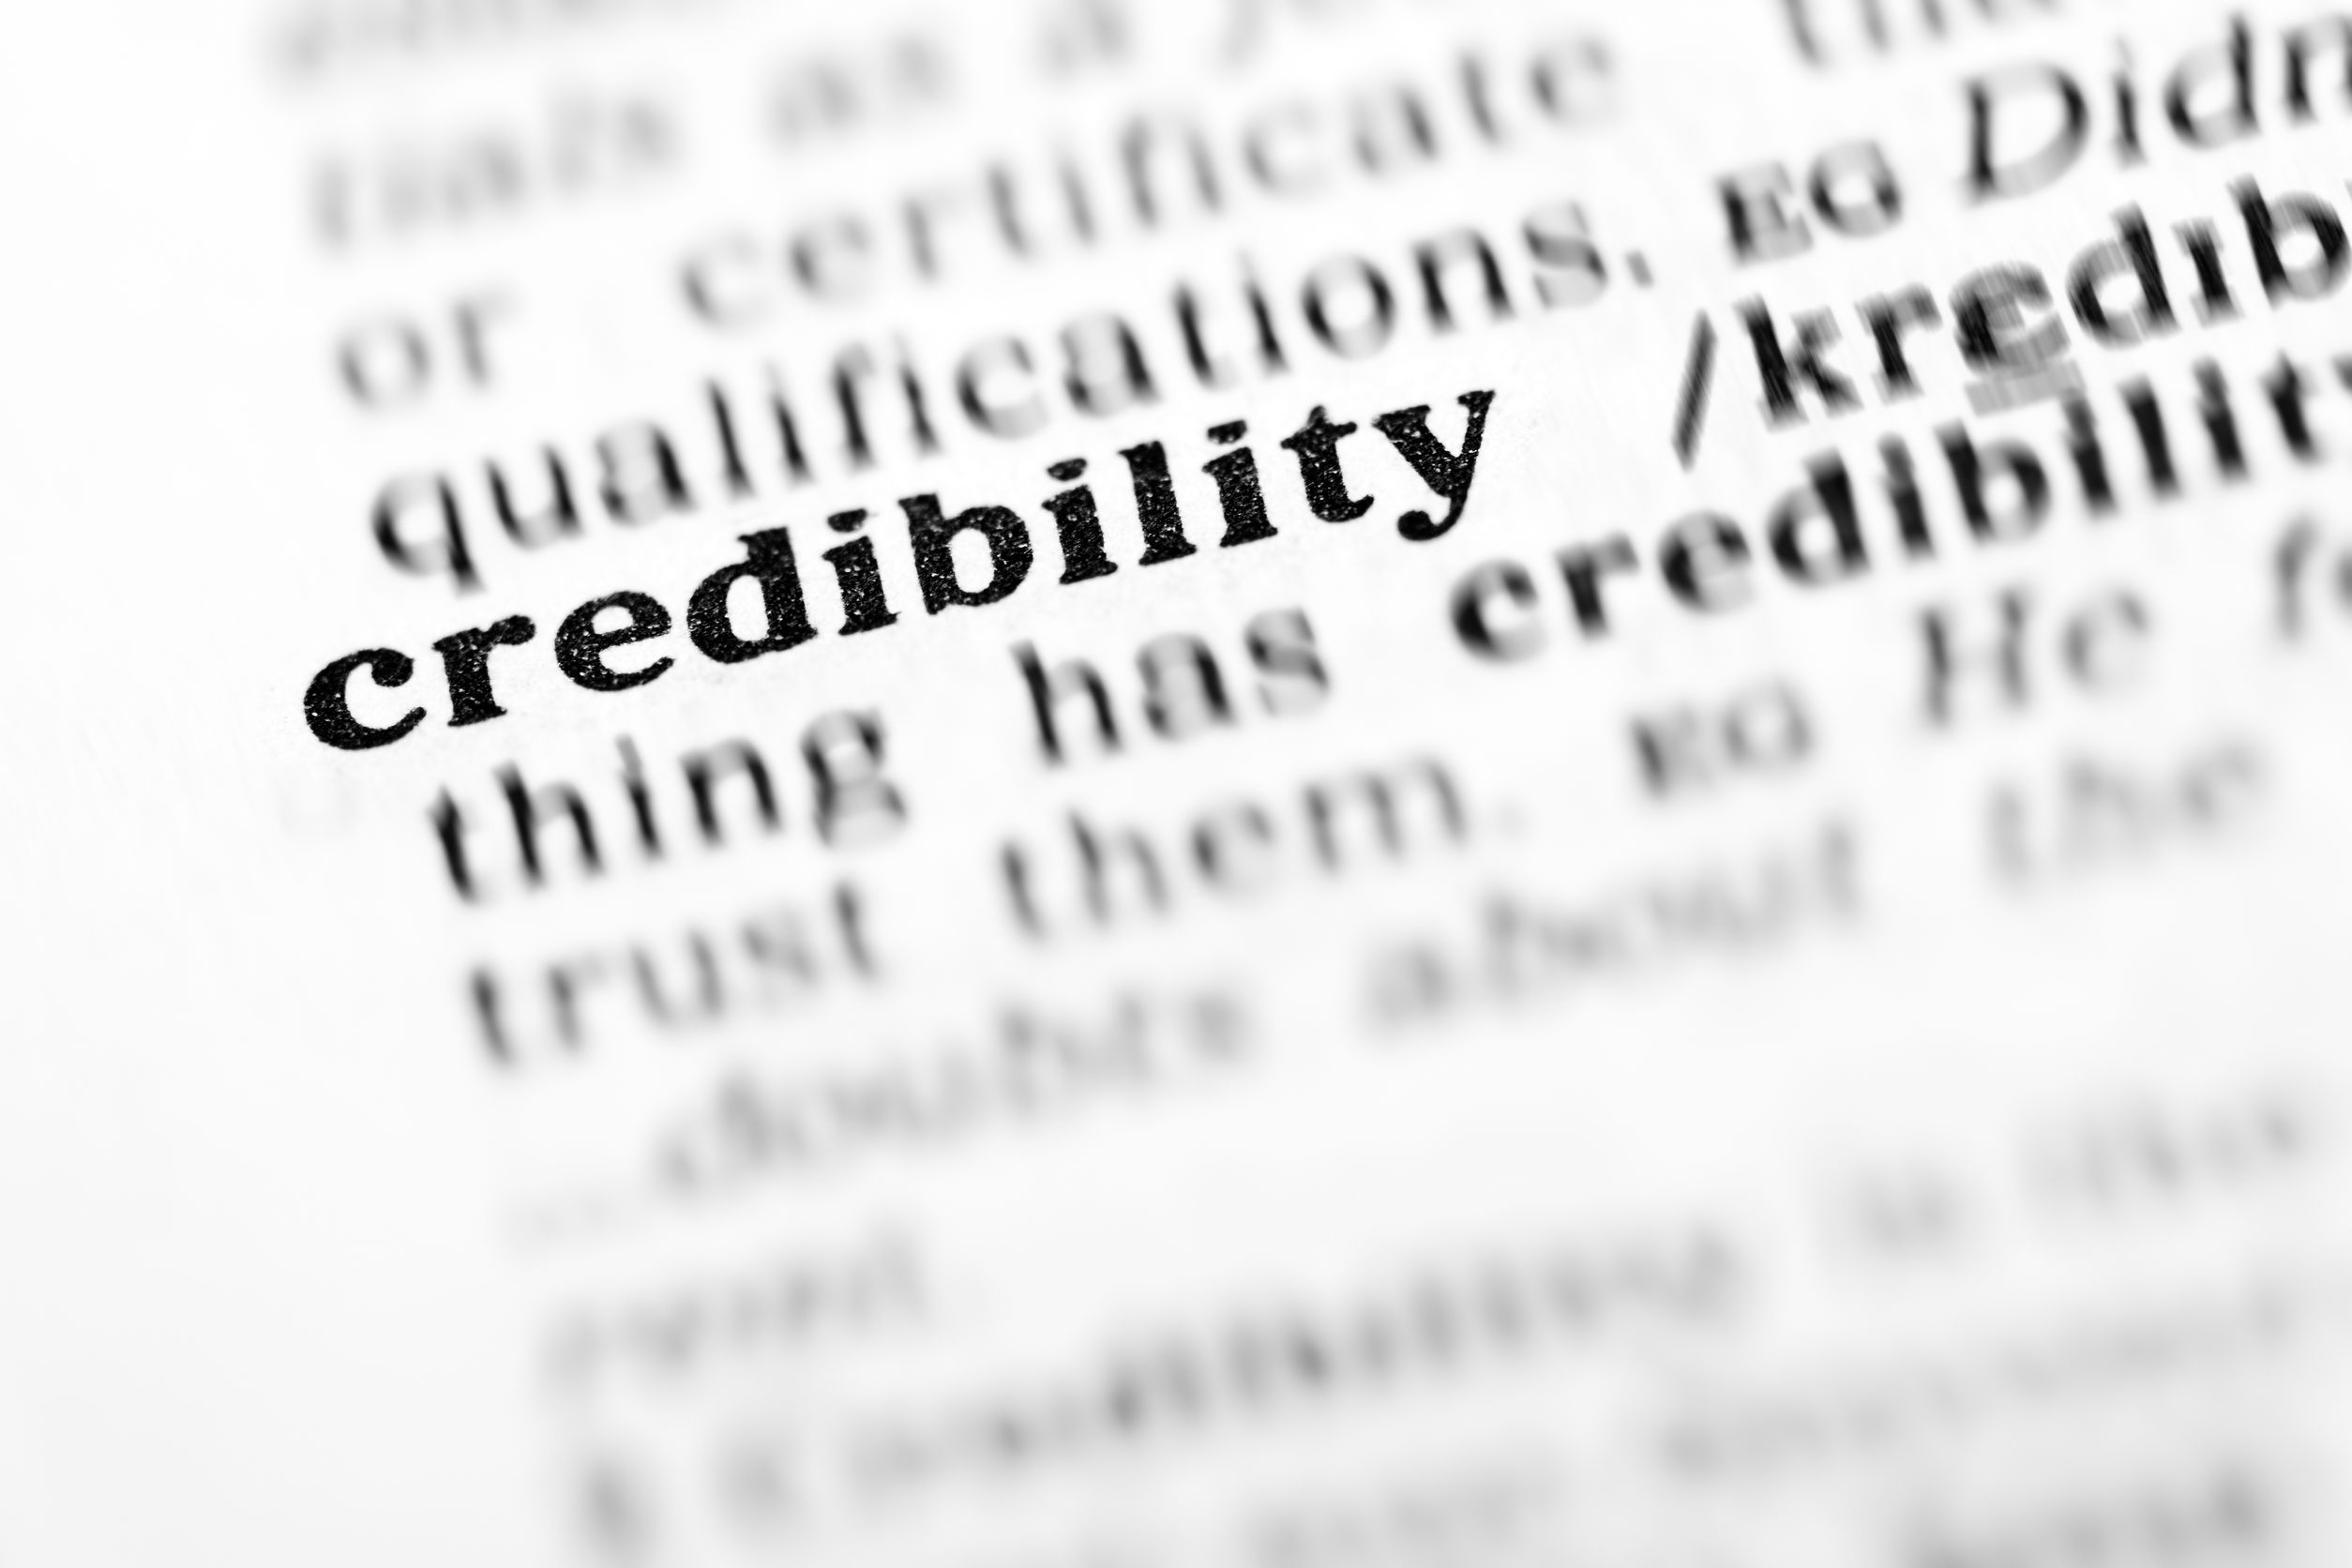 5 ways to build credibility